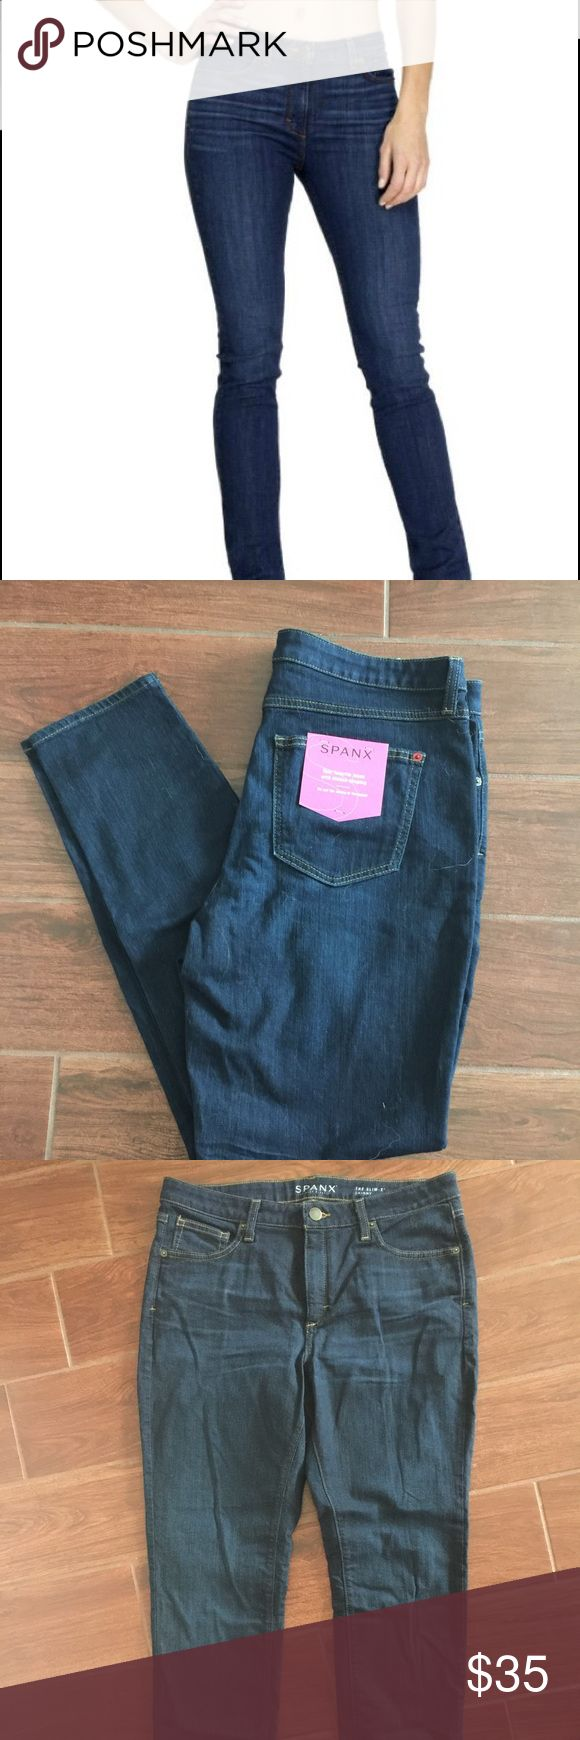 """Spanx """"The Slim-X"""" skinny jean 😍New😍 Mid-rise skinny jean in indigo 31"""" inseam, 93% bomuld,6% polyester, 1% Lycra.  These jeans are made to make the most out of your assets!  These are jeans, not jeggings... SPANX Pants Skinny"""